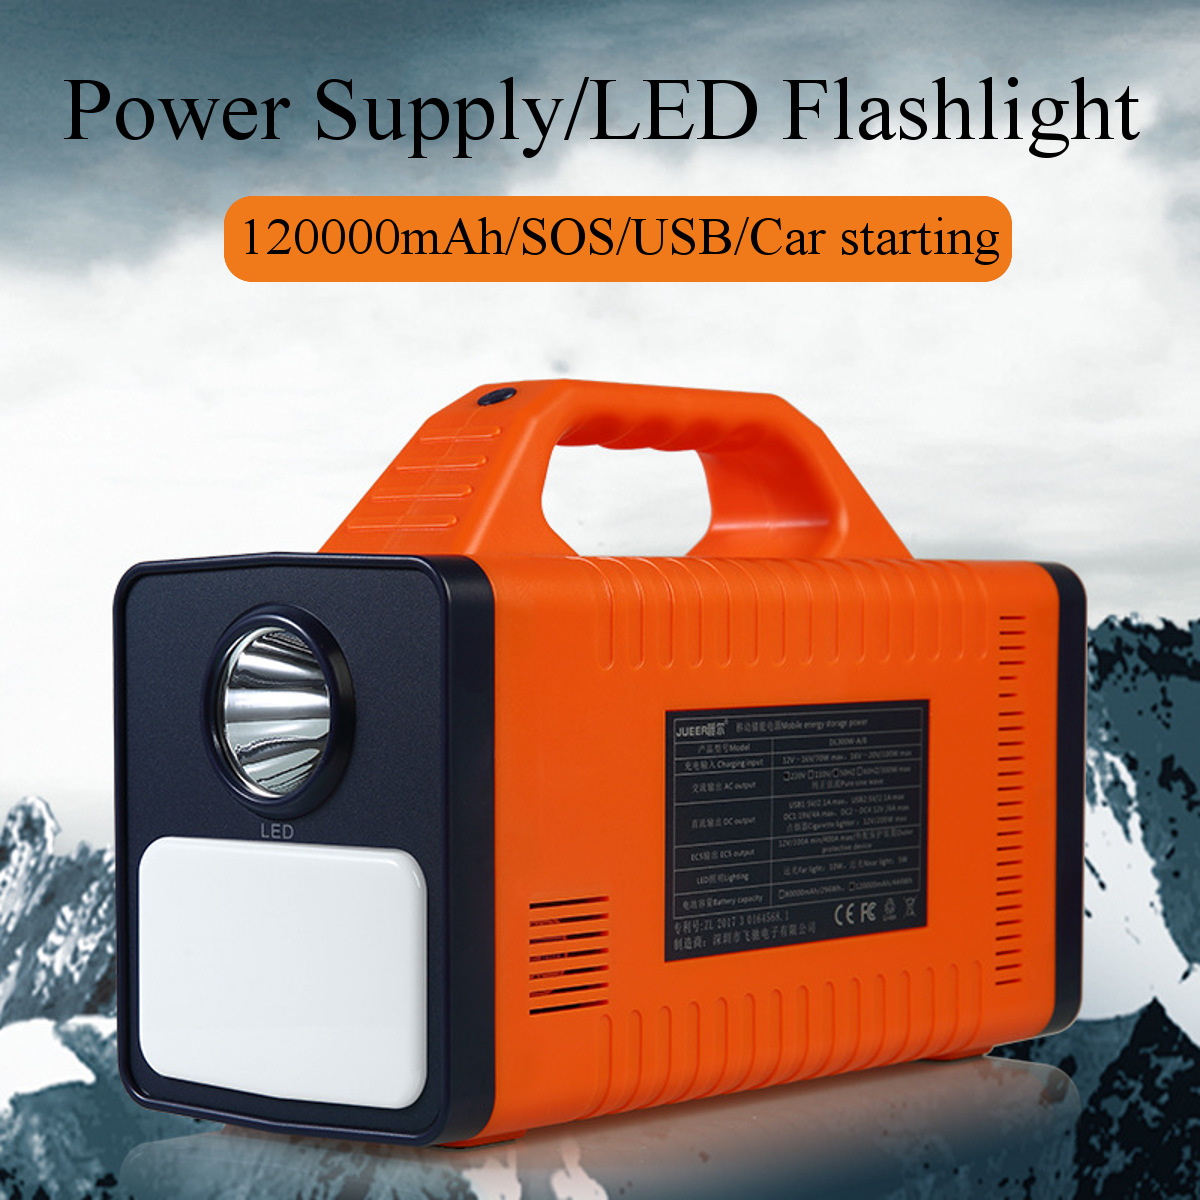 120000mAh 444Wh 300W Portable Solar Power Inverter Generator Camping Light Car Jump Starter Energy Storage Mobile Power Supply